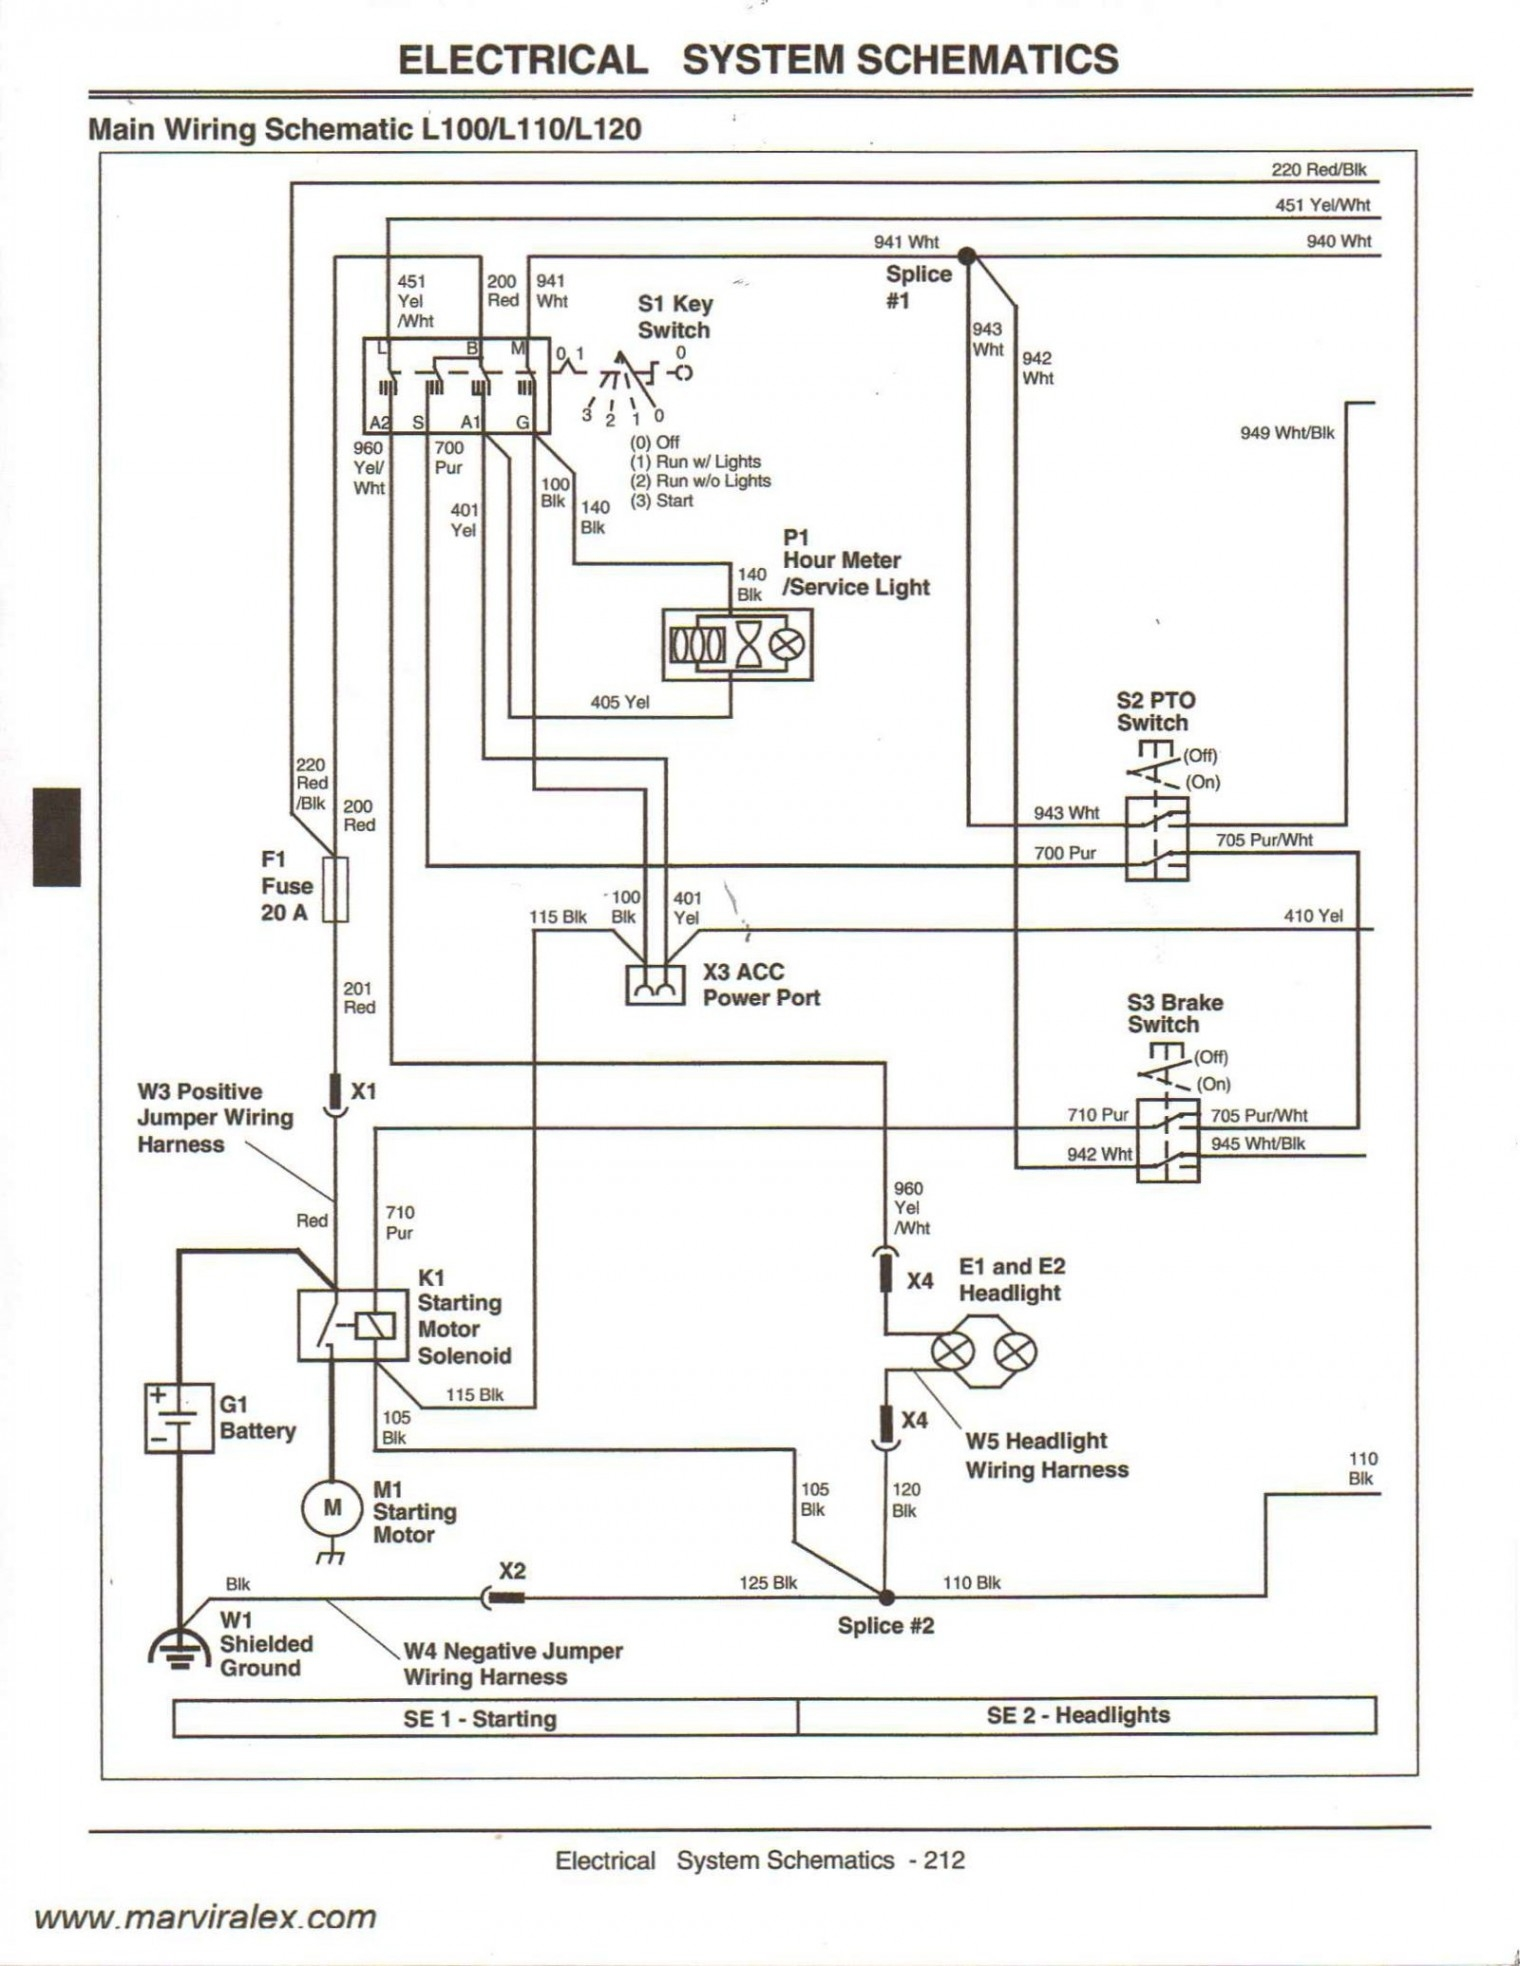 john deere l130 wiring diagram | free wiring diagram john deere wiring harness diagrams 350 john deere wiring harness diagram